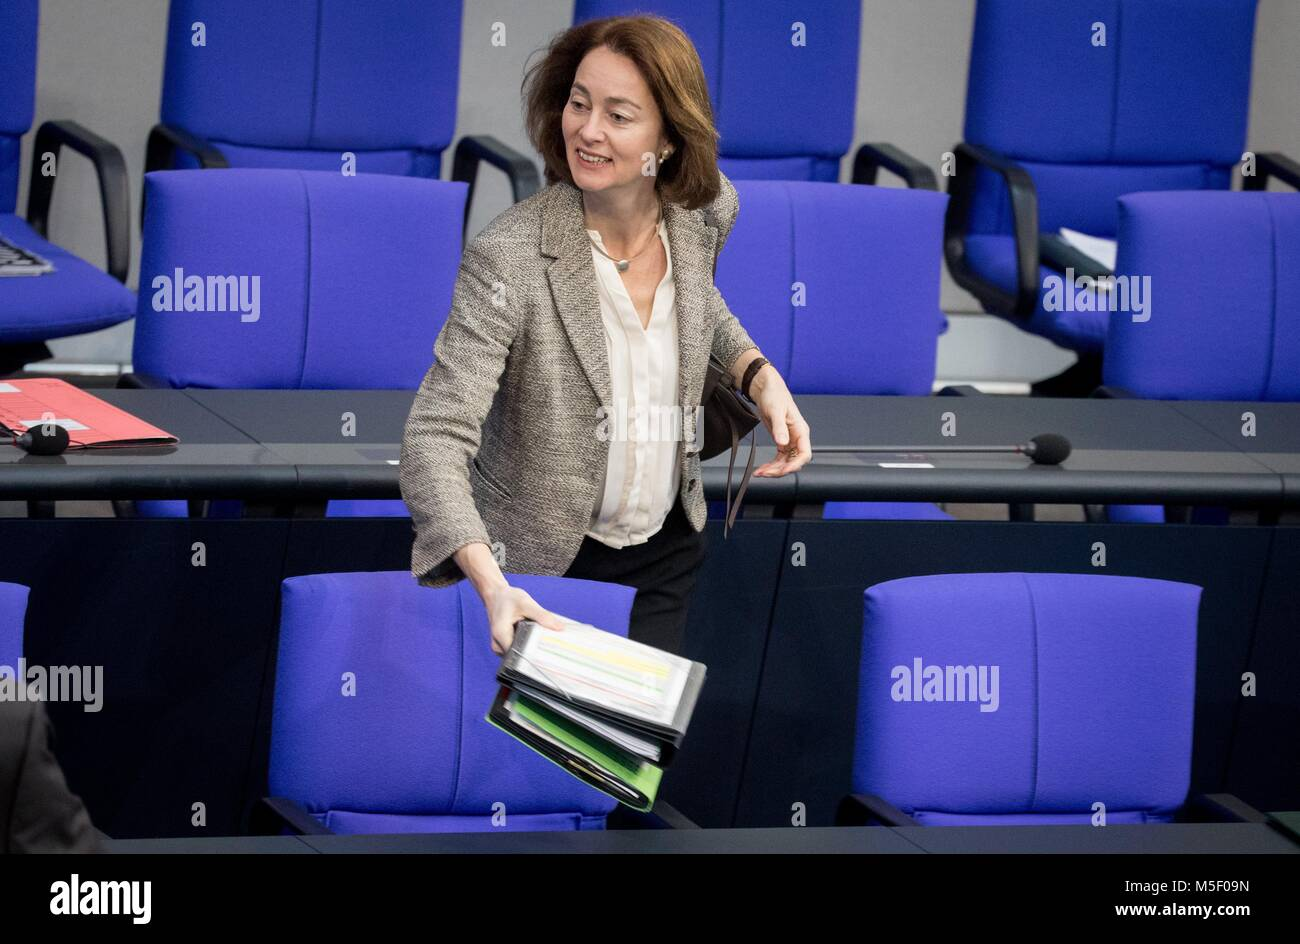 Berlin, Germany. 23rd Feb, 2018. Family Minister Katarina Barley of the Social Democratic Party (SPD) speaks at - Stock Image